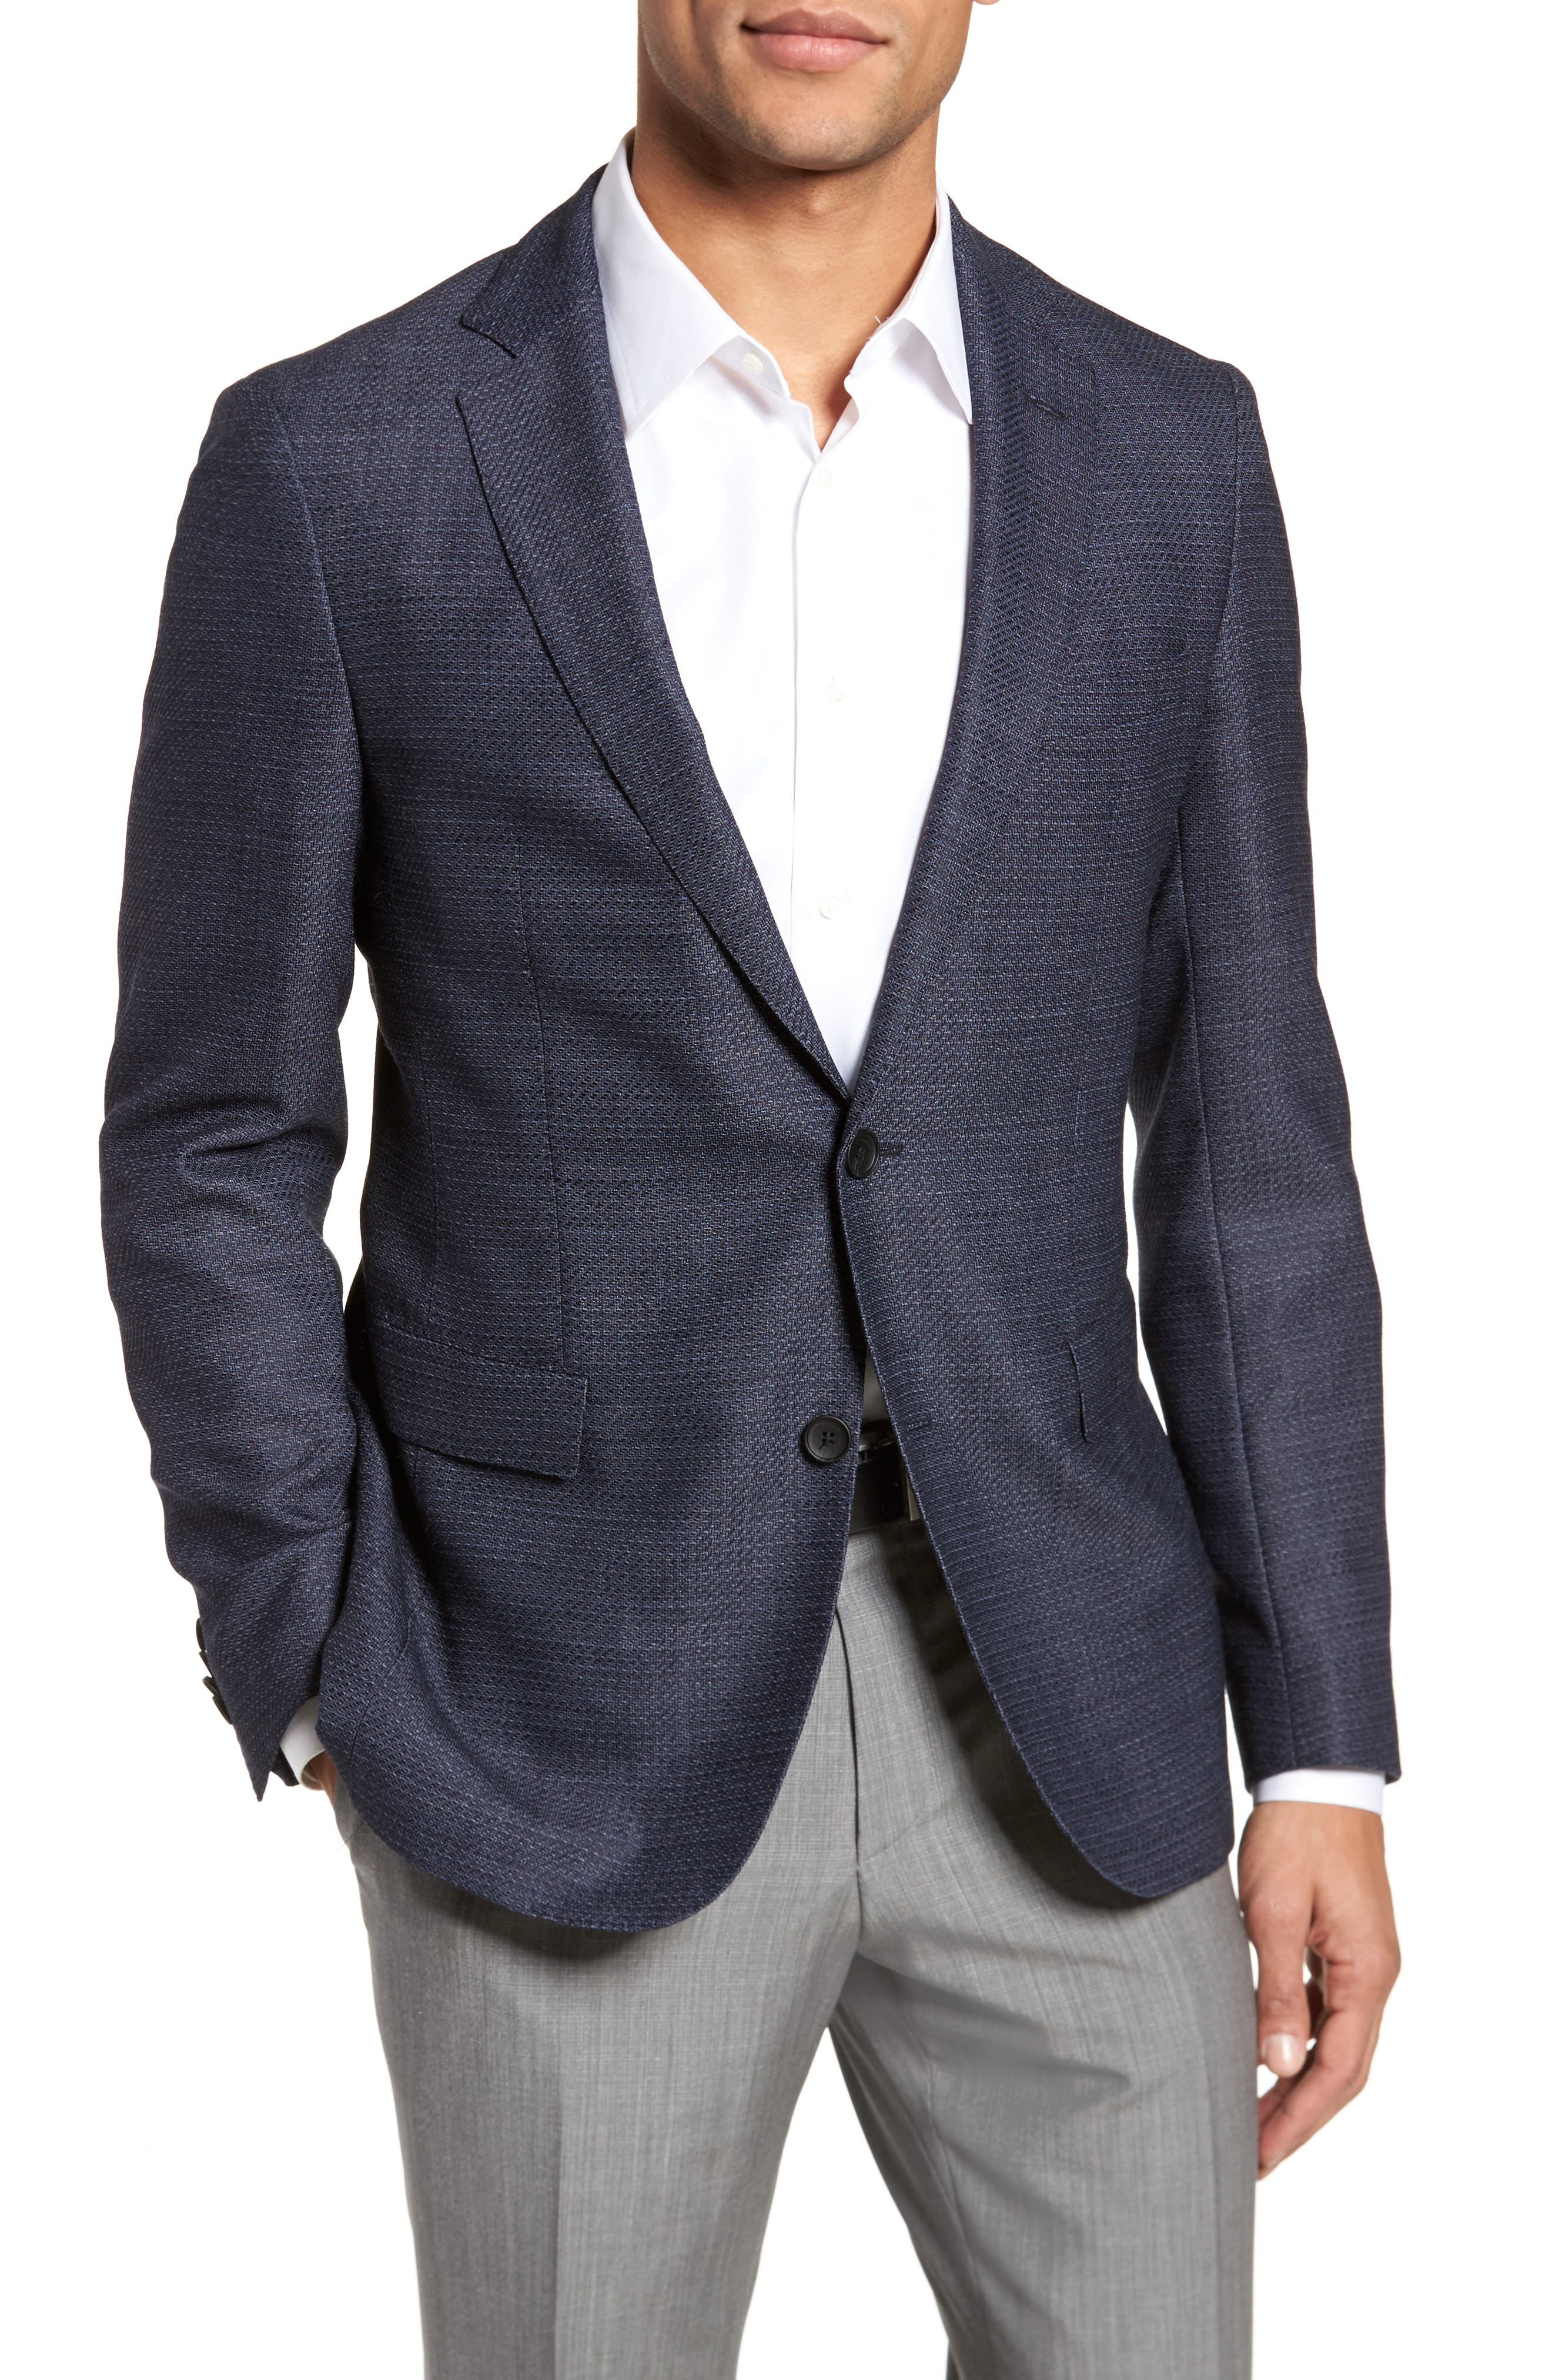 Roan Extra Trim Fit Stretch Wool Blend Blazer,                             Main thumbnail 1, color,                             410